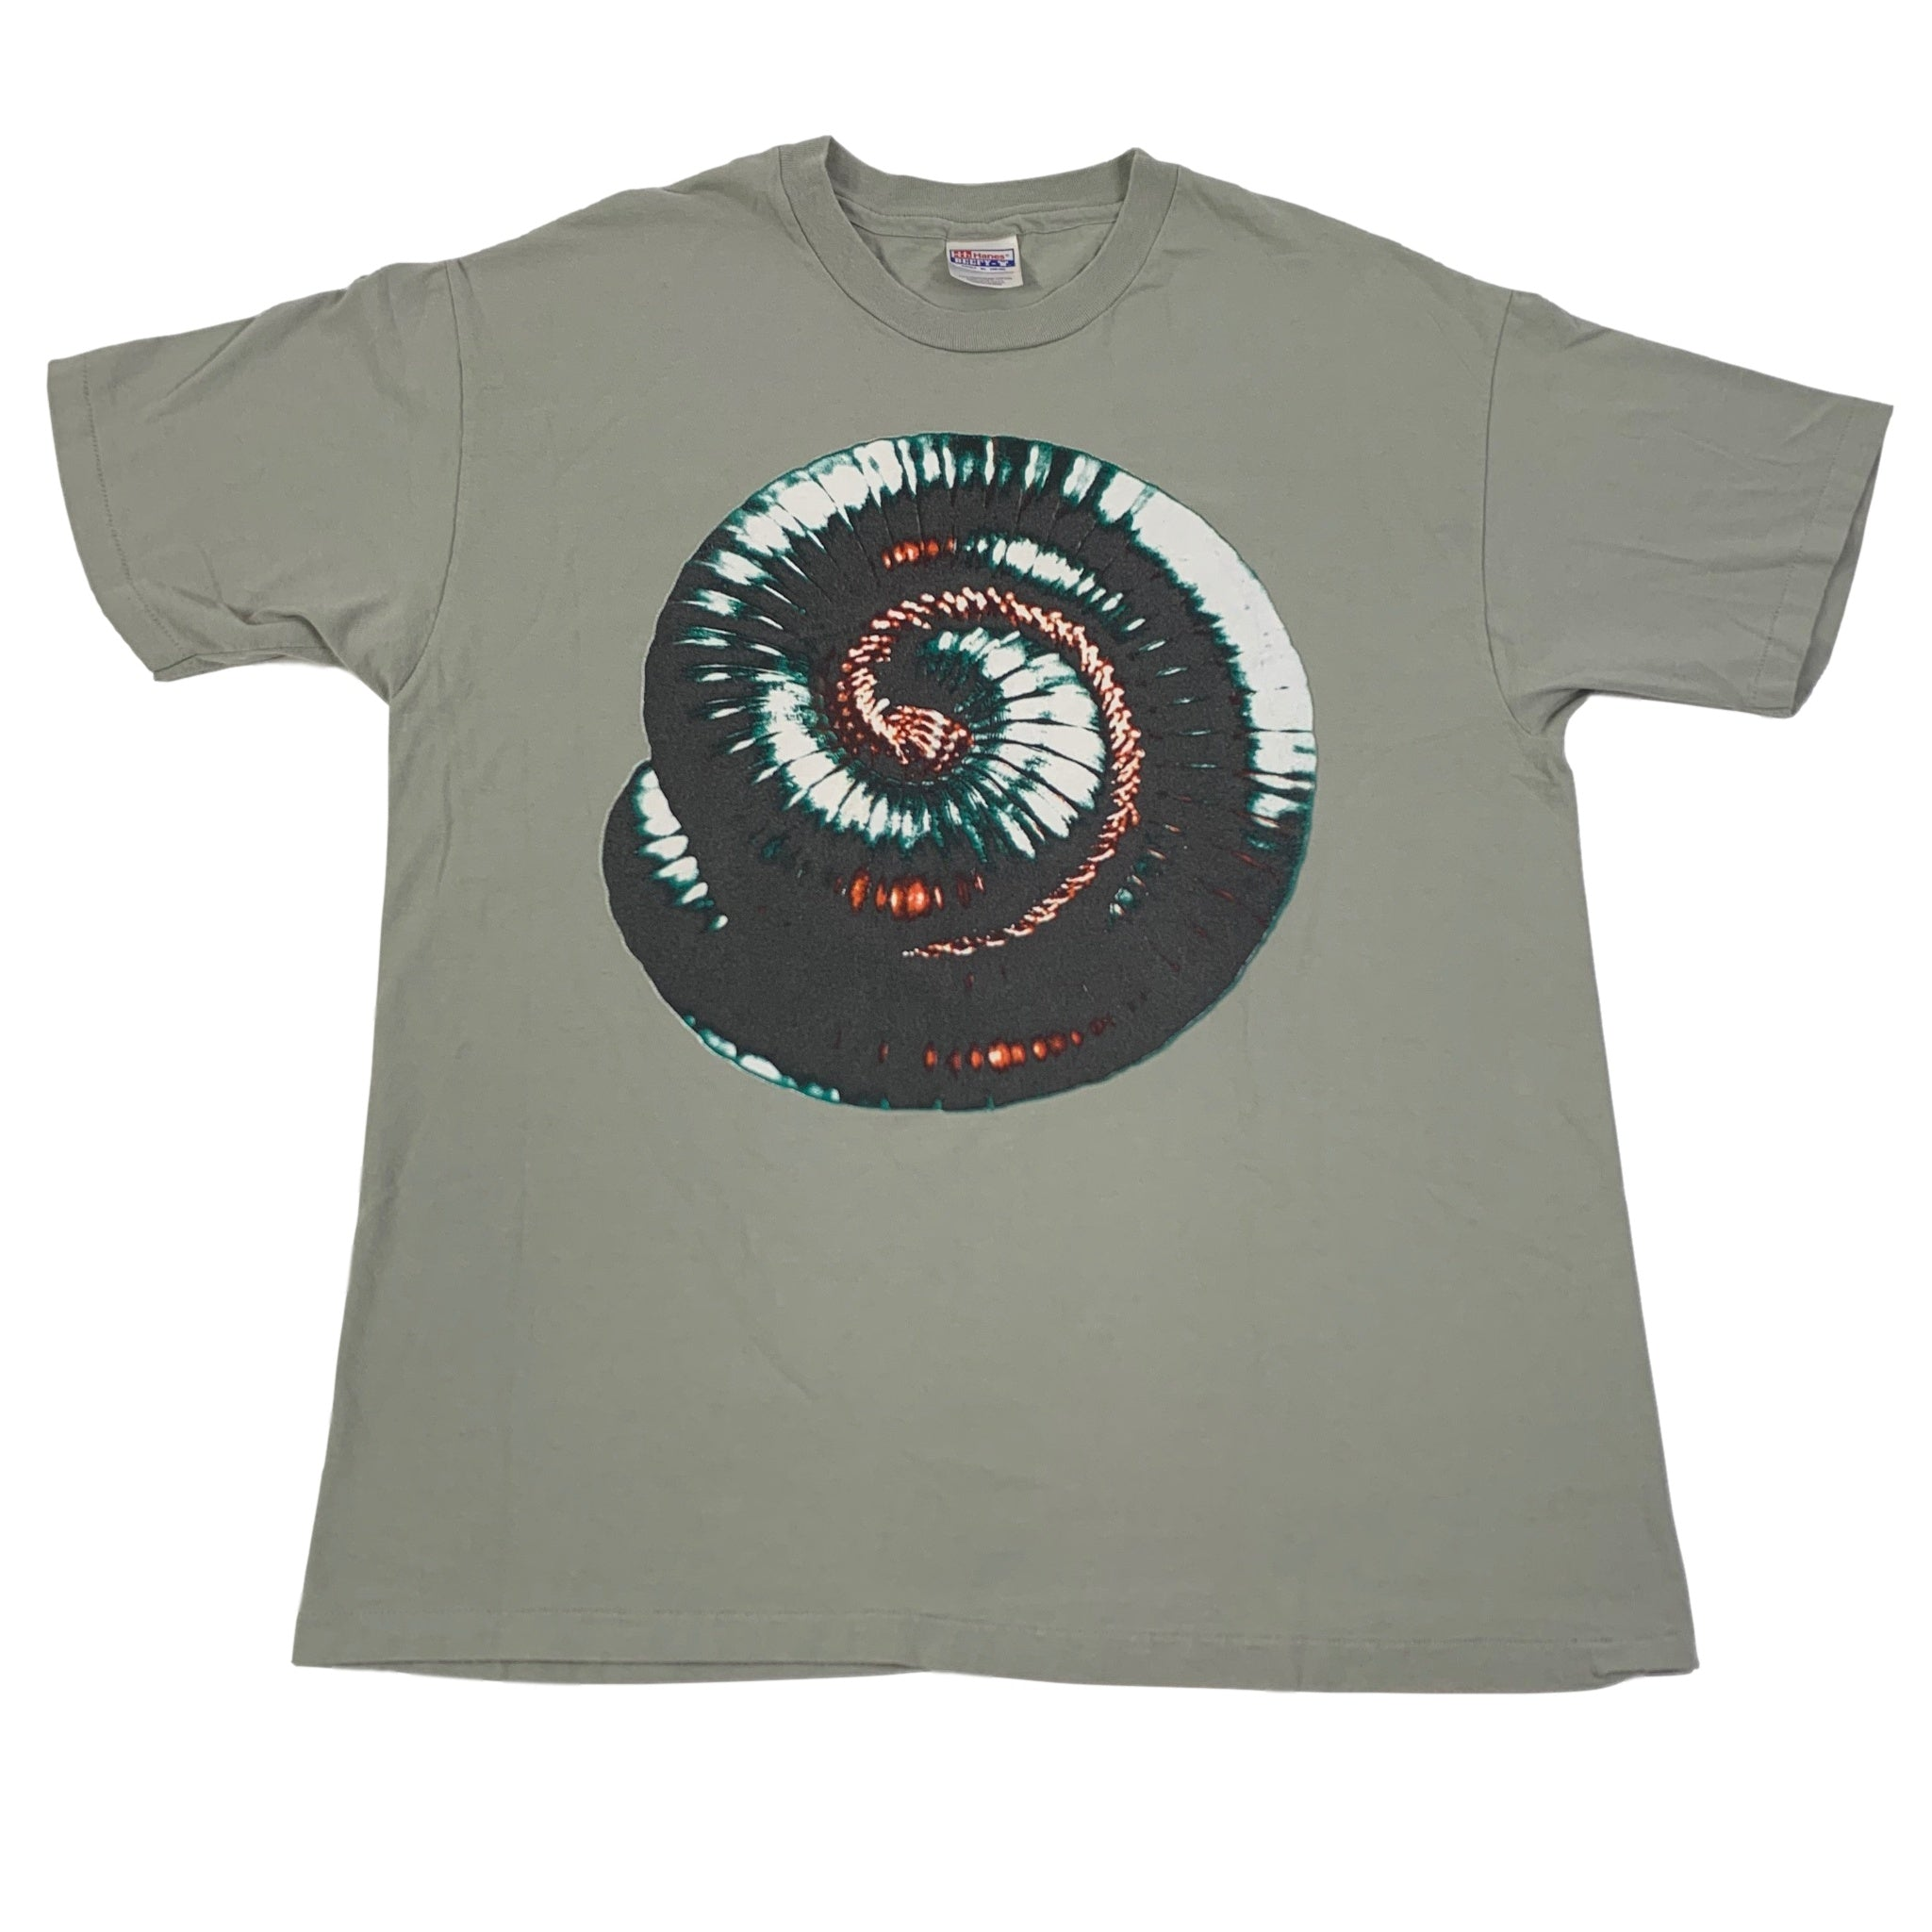 "Vintage Nine Inch Nails ""Closer To God"" T-Shirt"